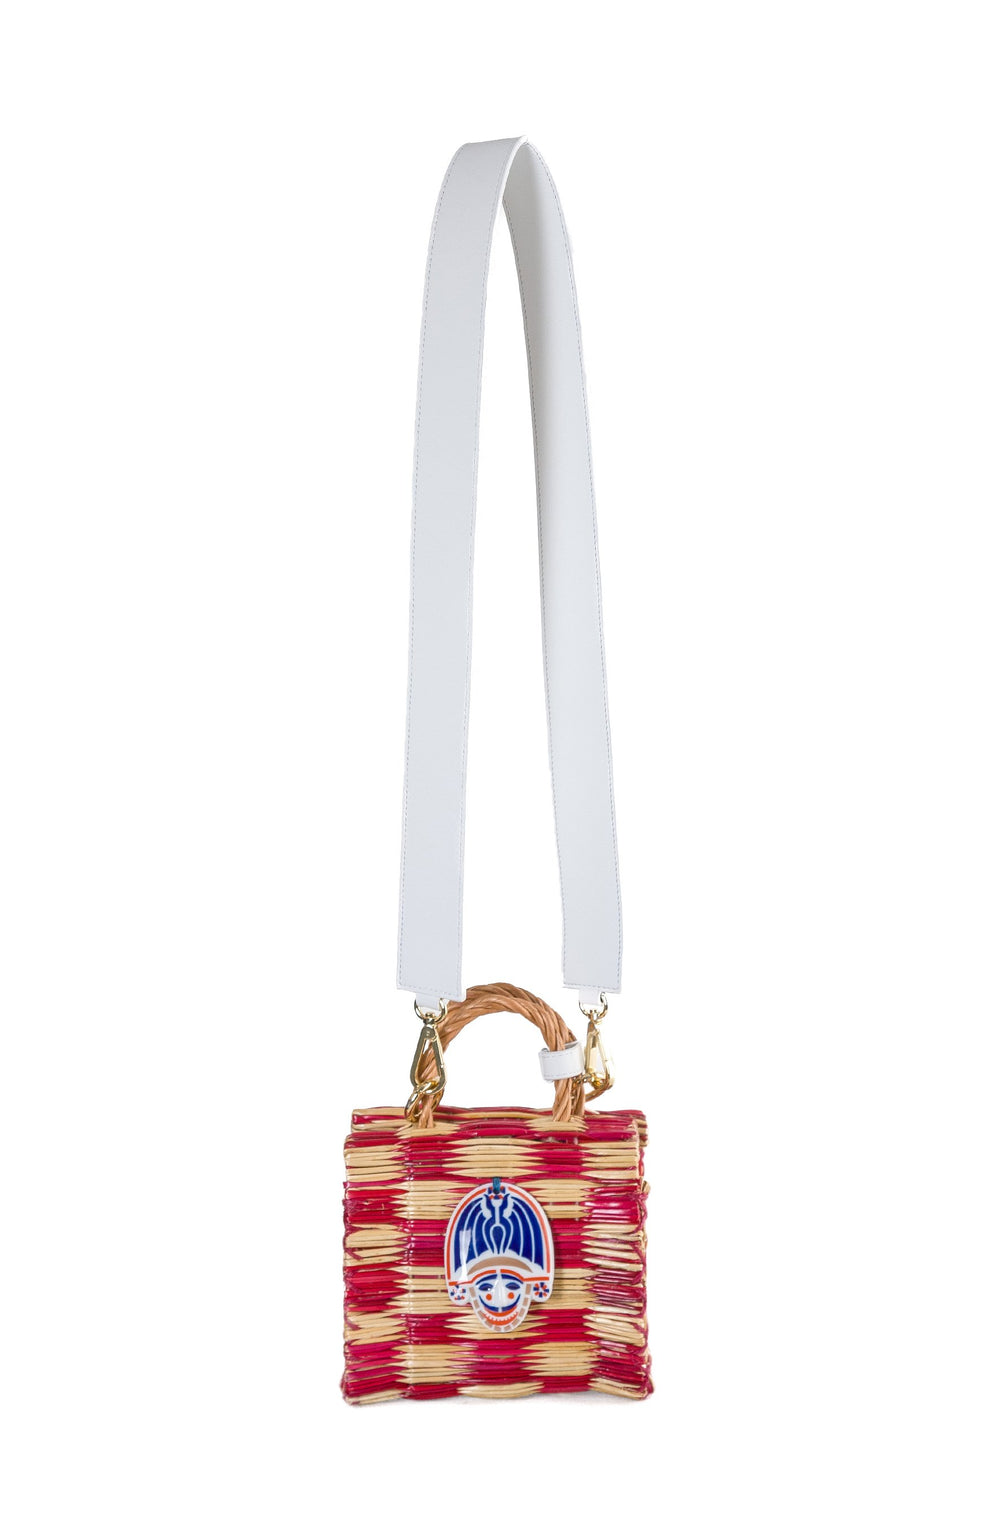 Tom tom red mini in white with strap